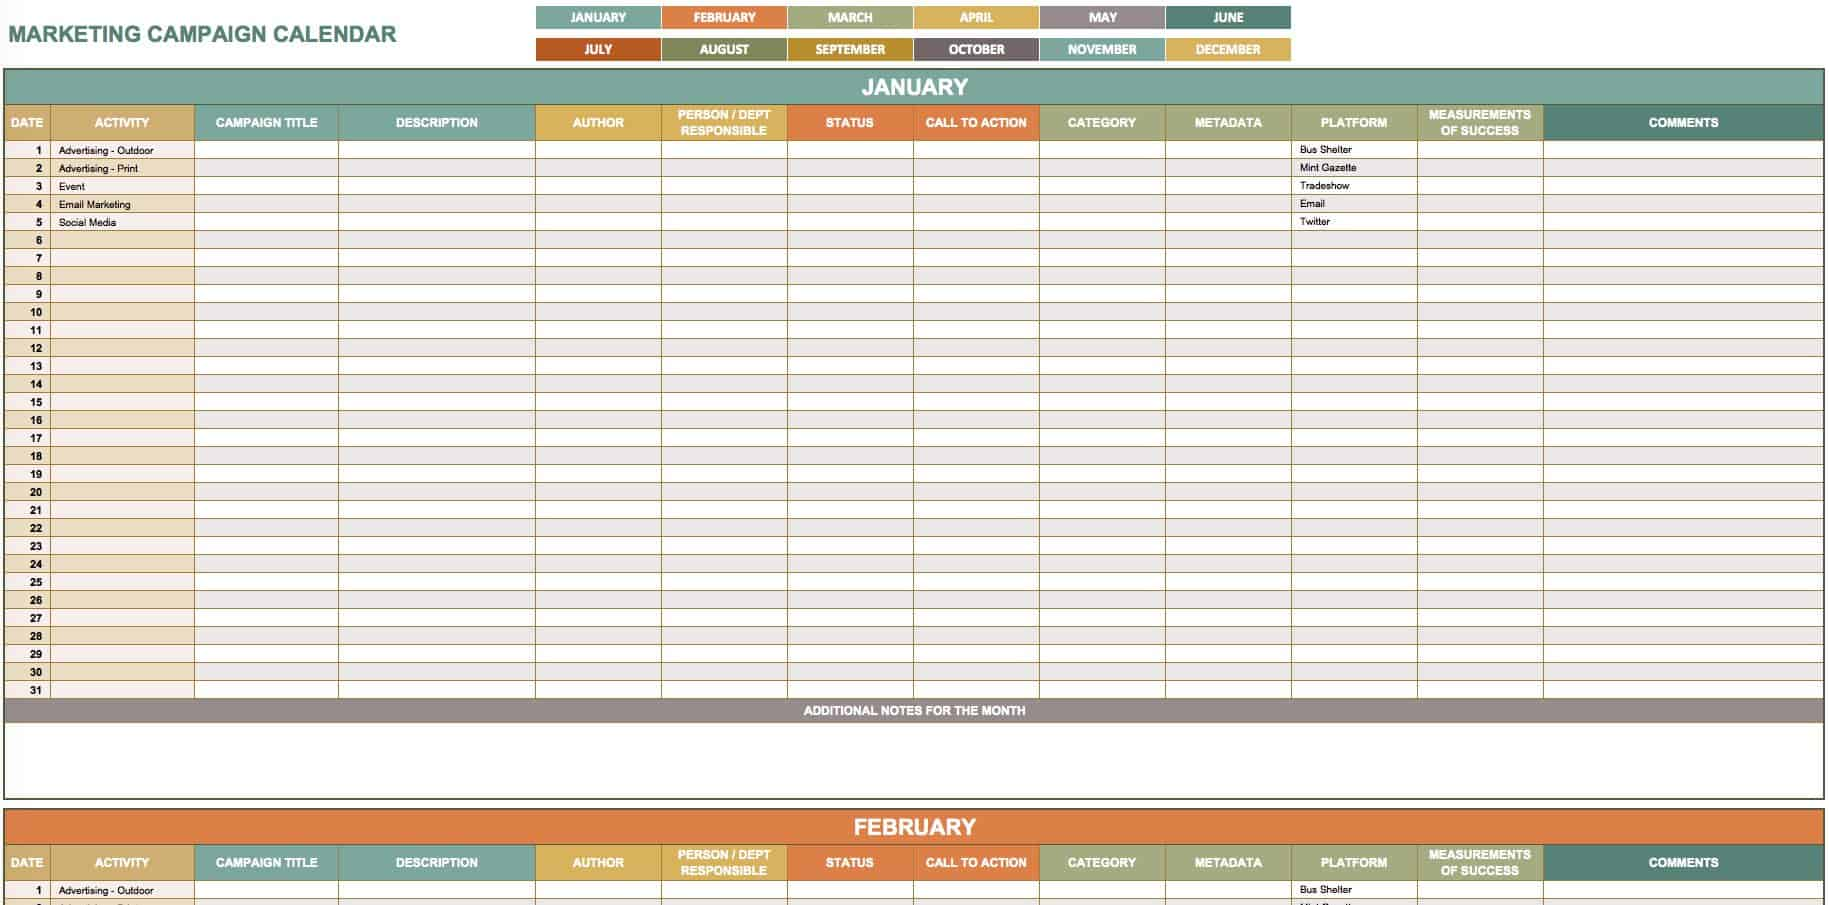 Free Marketing Calendar Templates For Excel Smartsheet - Content marketing schedule template